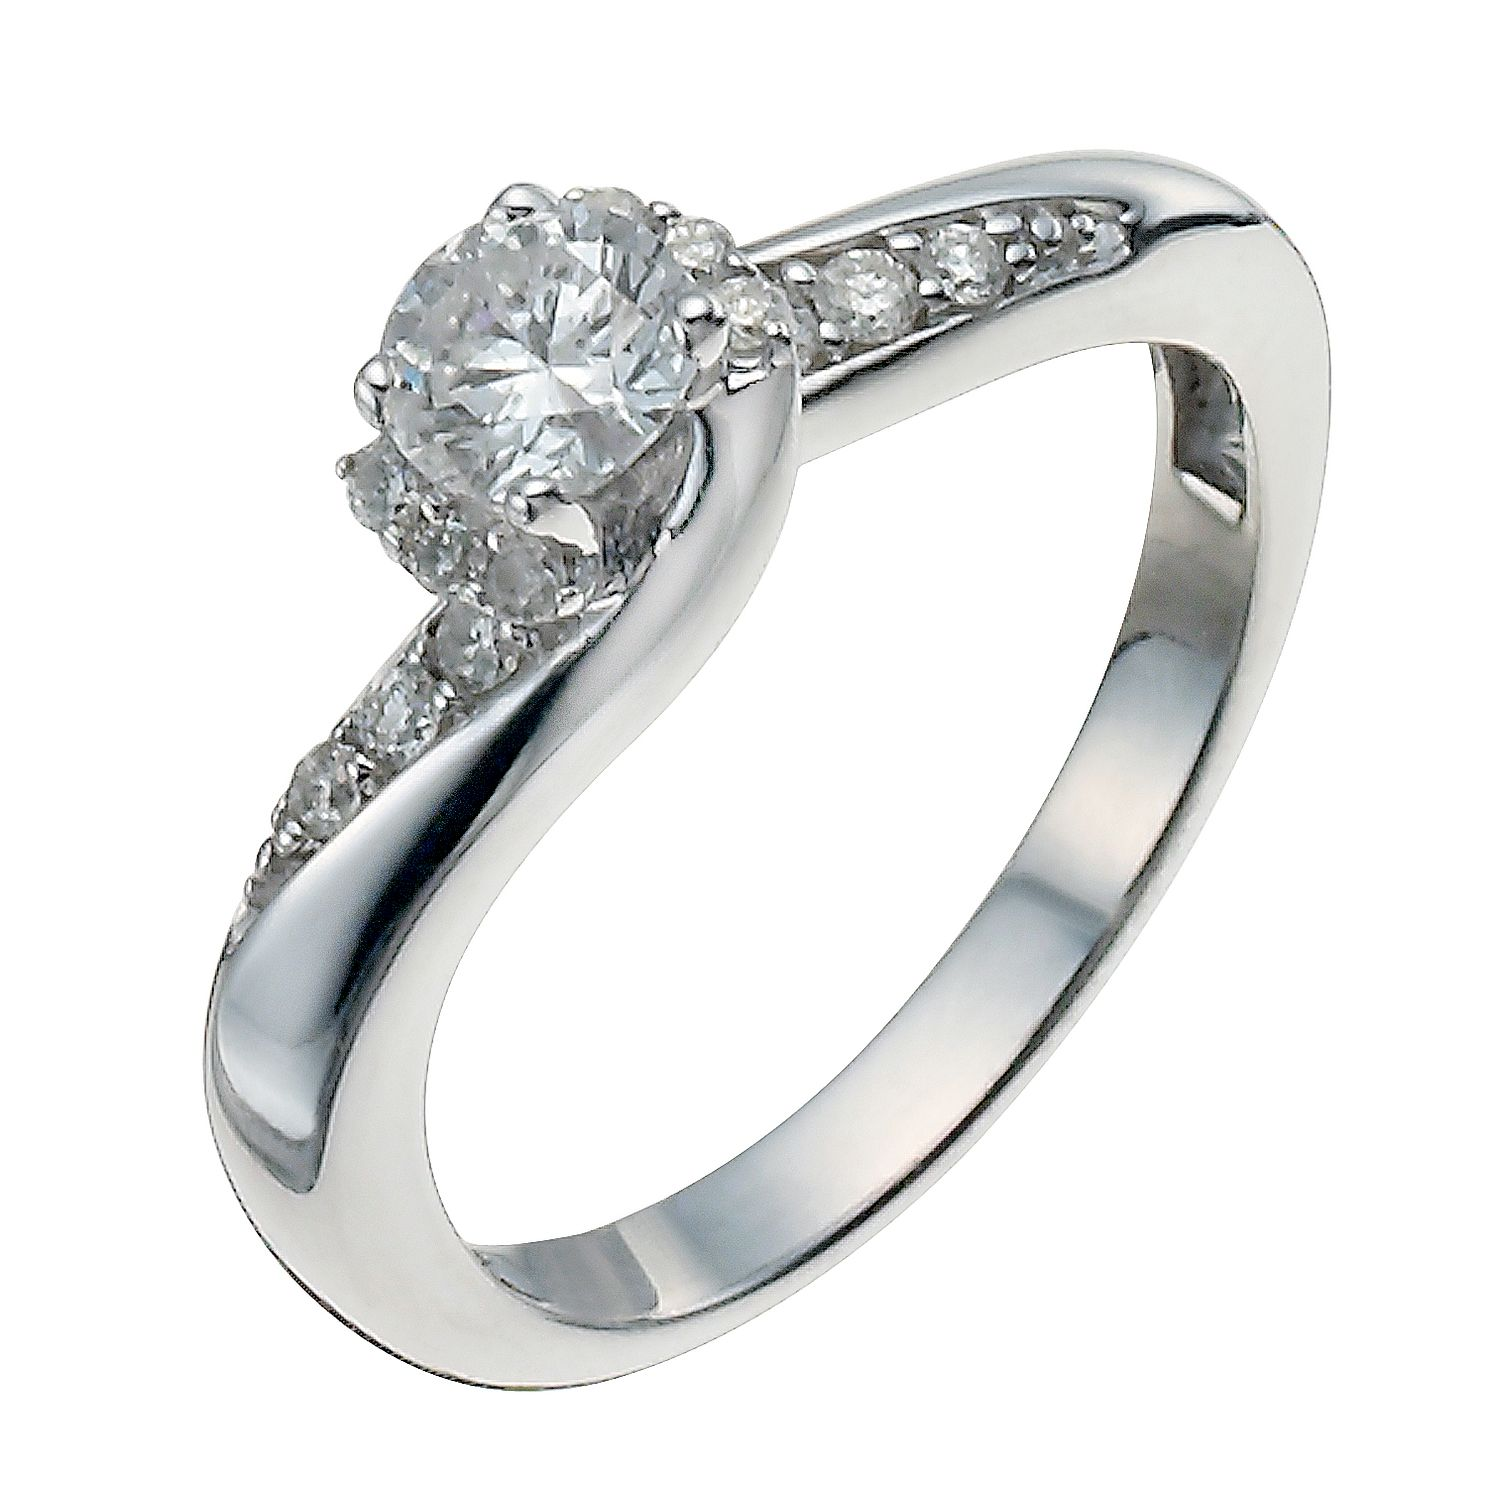 secrets of half prices blog in diamond engagement the carat ring center jewelry